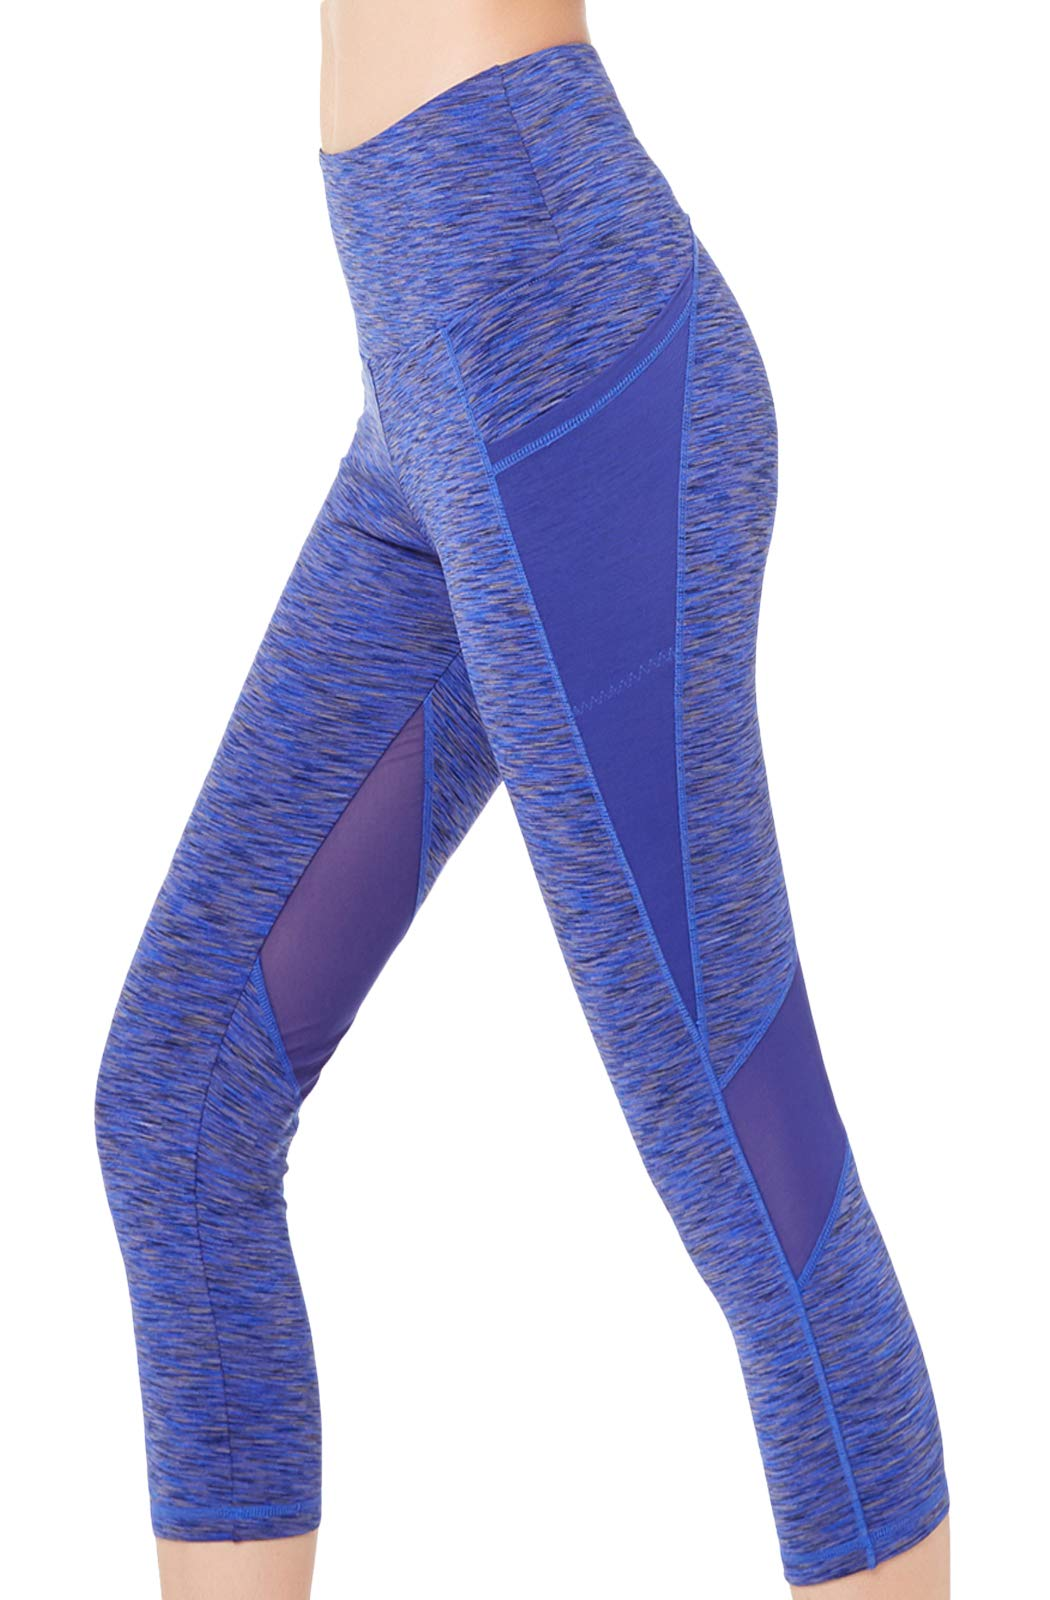 Picotee Women's Long Yoga Pants High Waist Workout Capri Leggings Running Active Tights w Side Pocket (Capri Leggings-Blue Mesh, L)